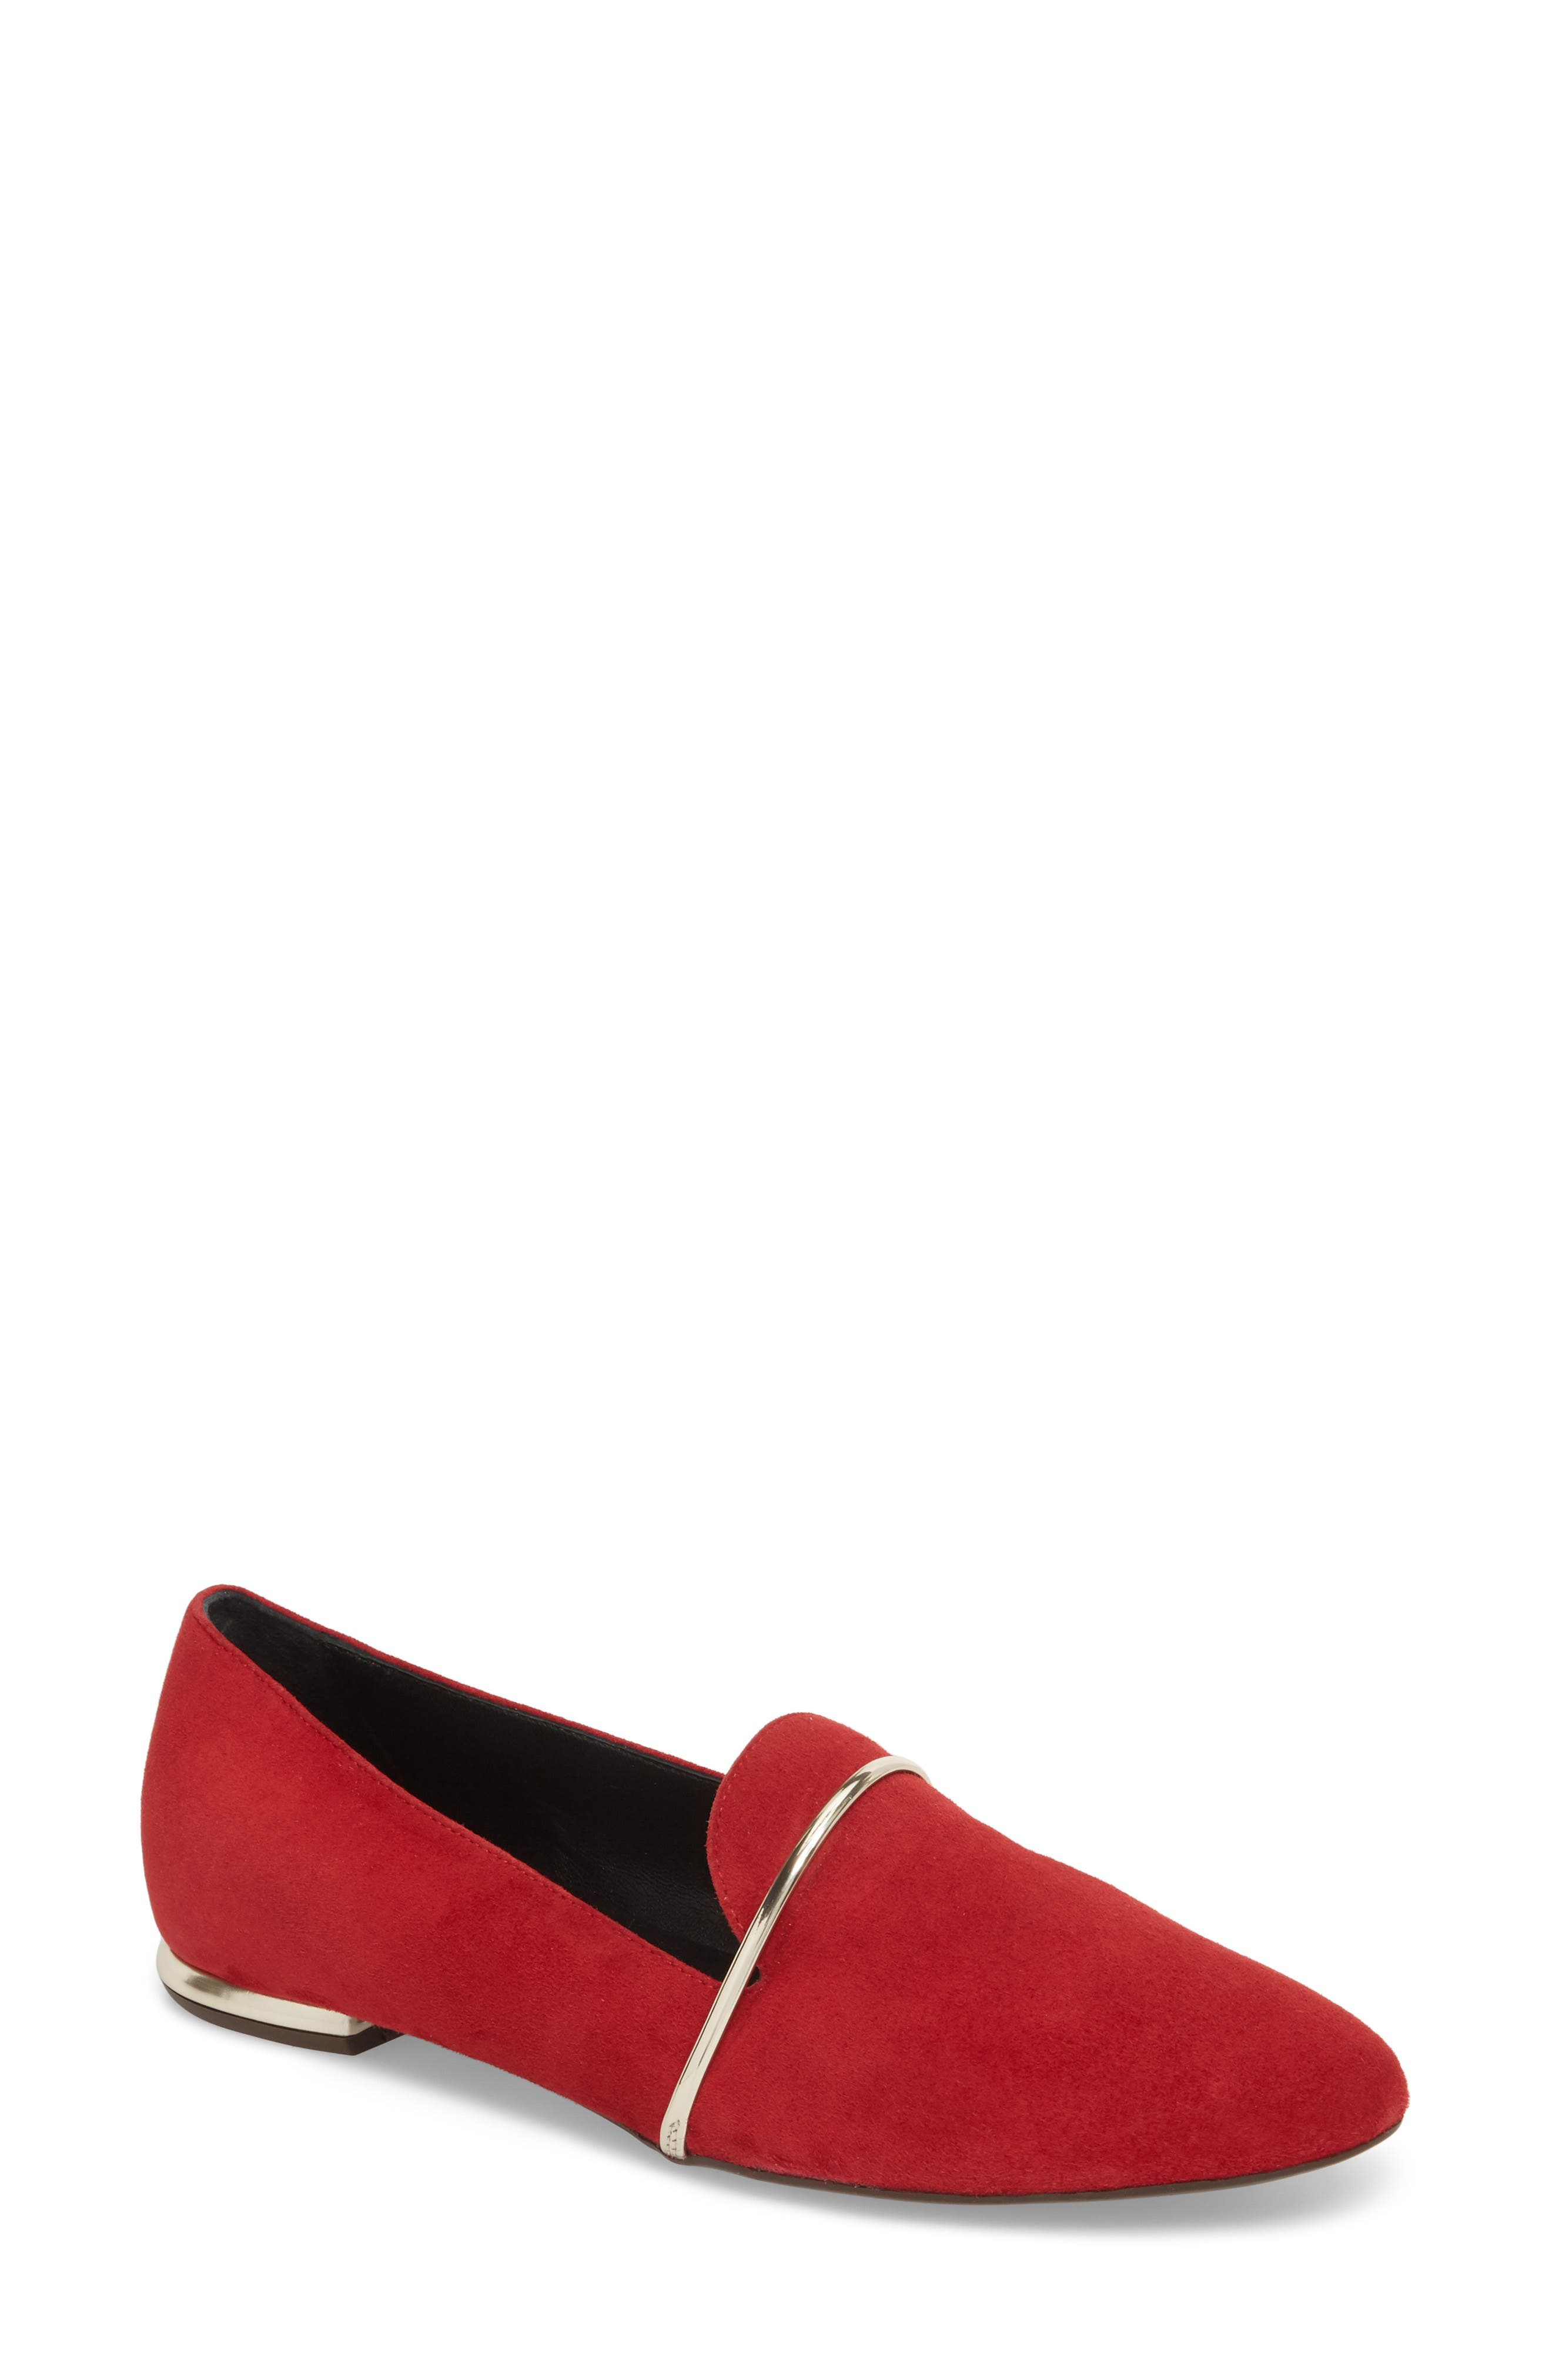 Smoking Slipper,                         Main,                         color, RED SUEDE